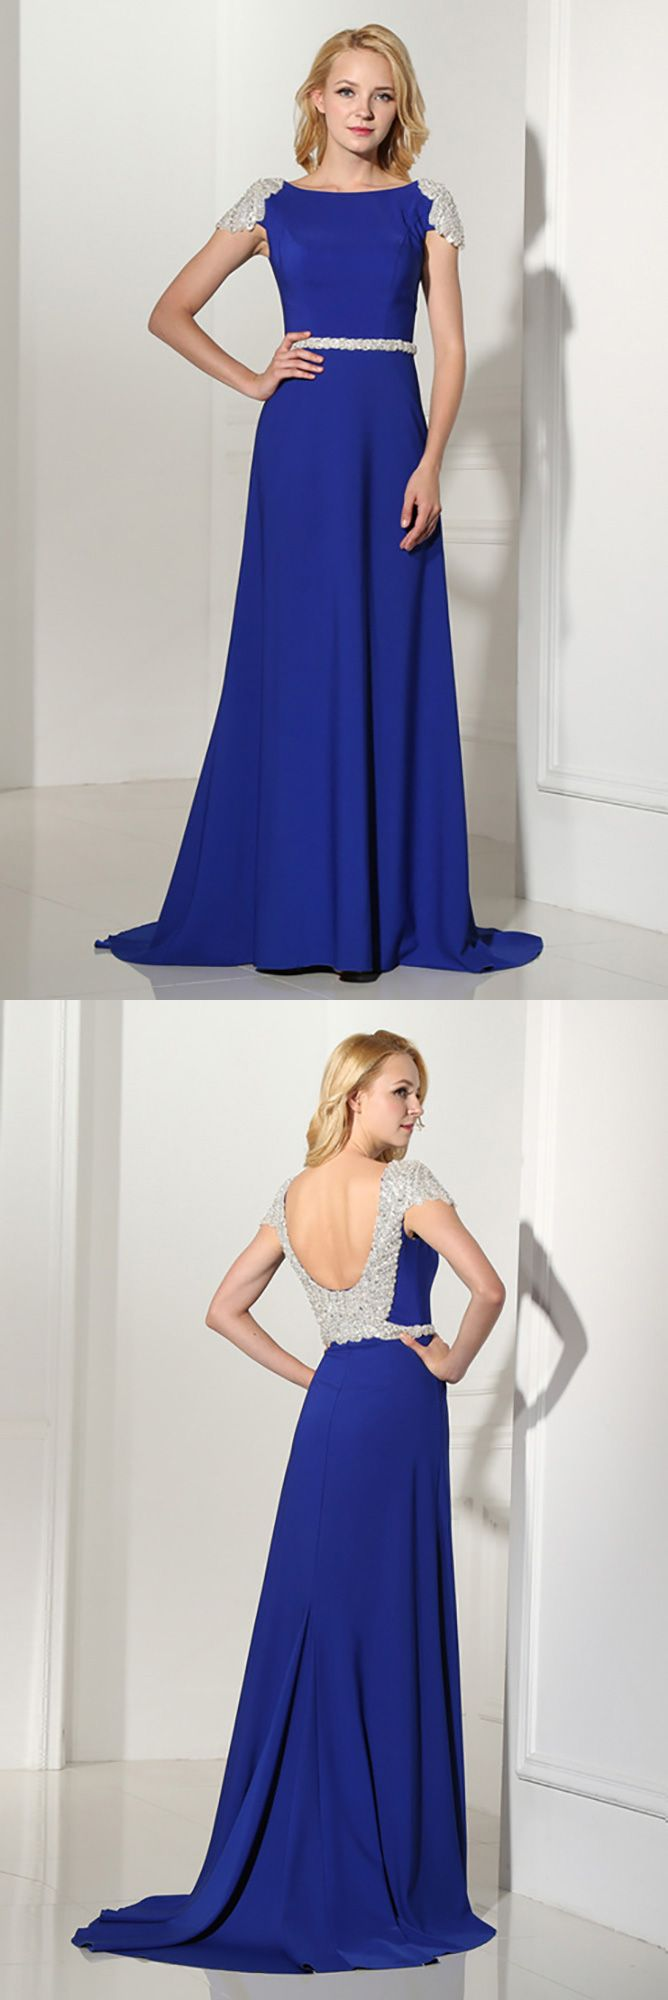 Royal Blue Long Petite Formal Dress With Beading Cap Sleeves #H76122 ...